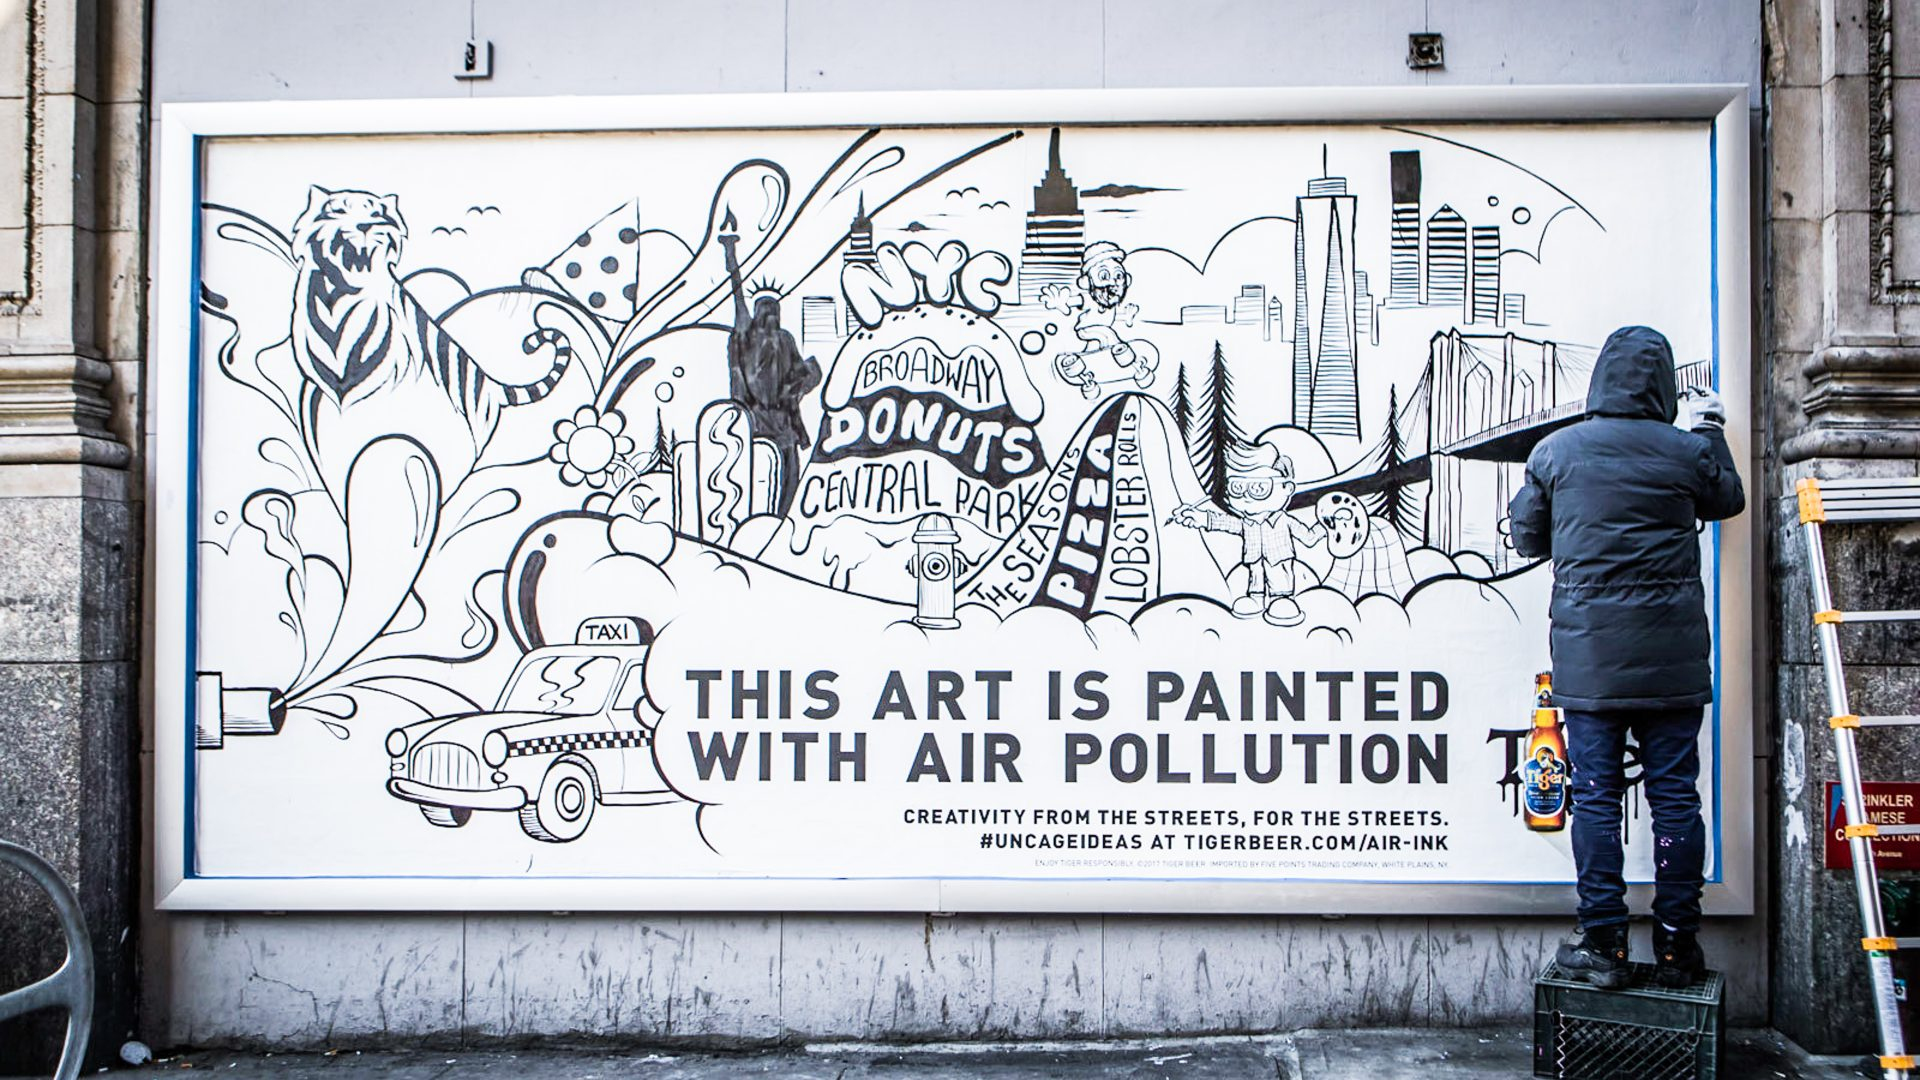 An art work painted using air pollution in New York